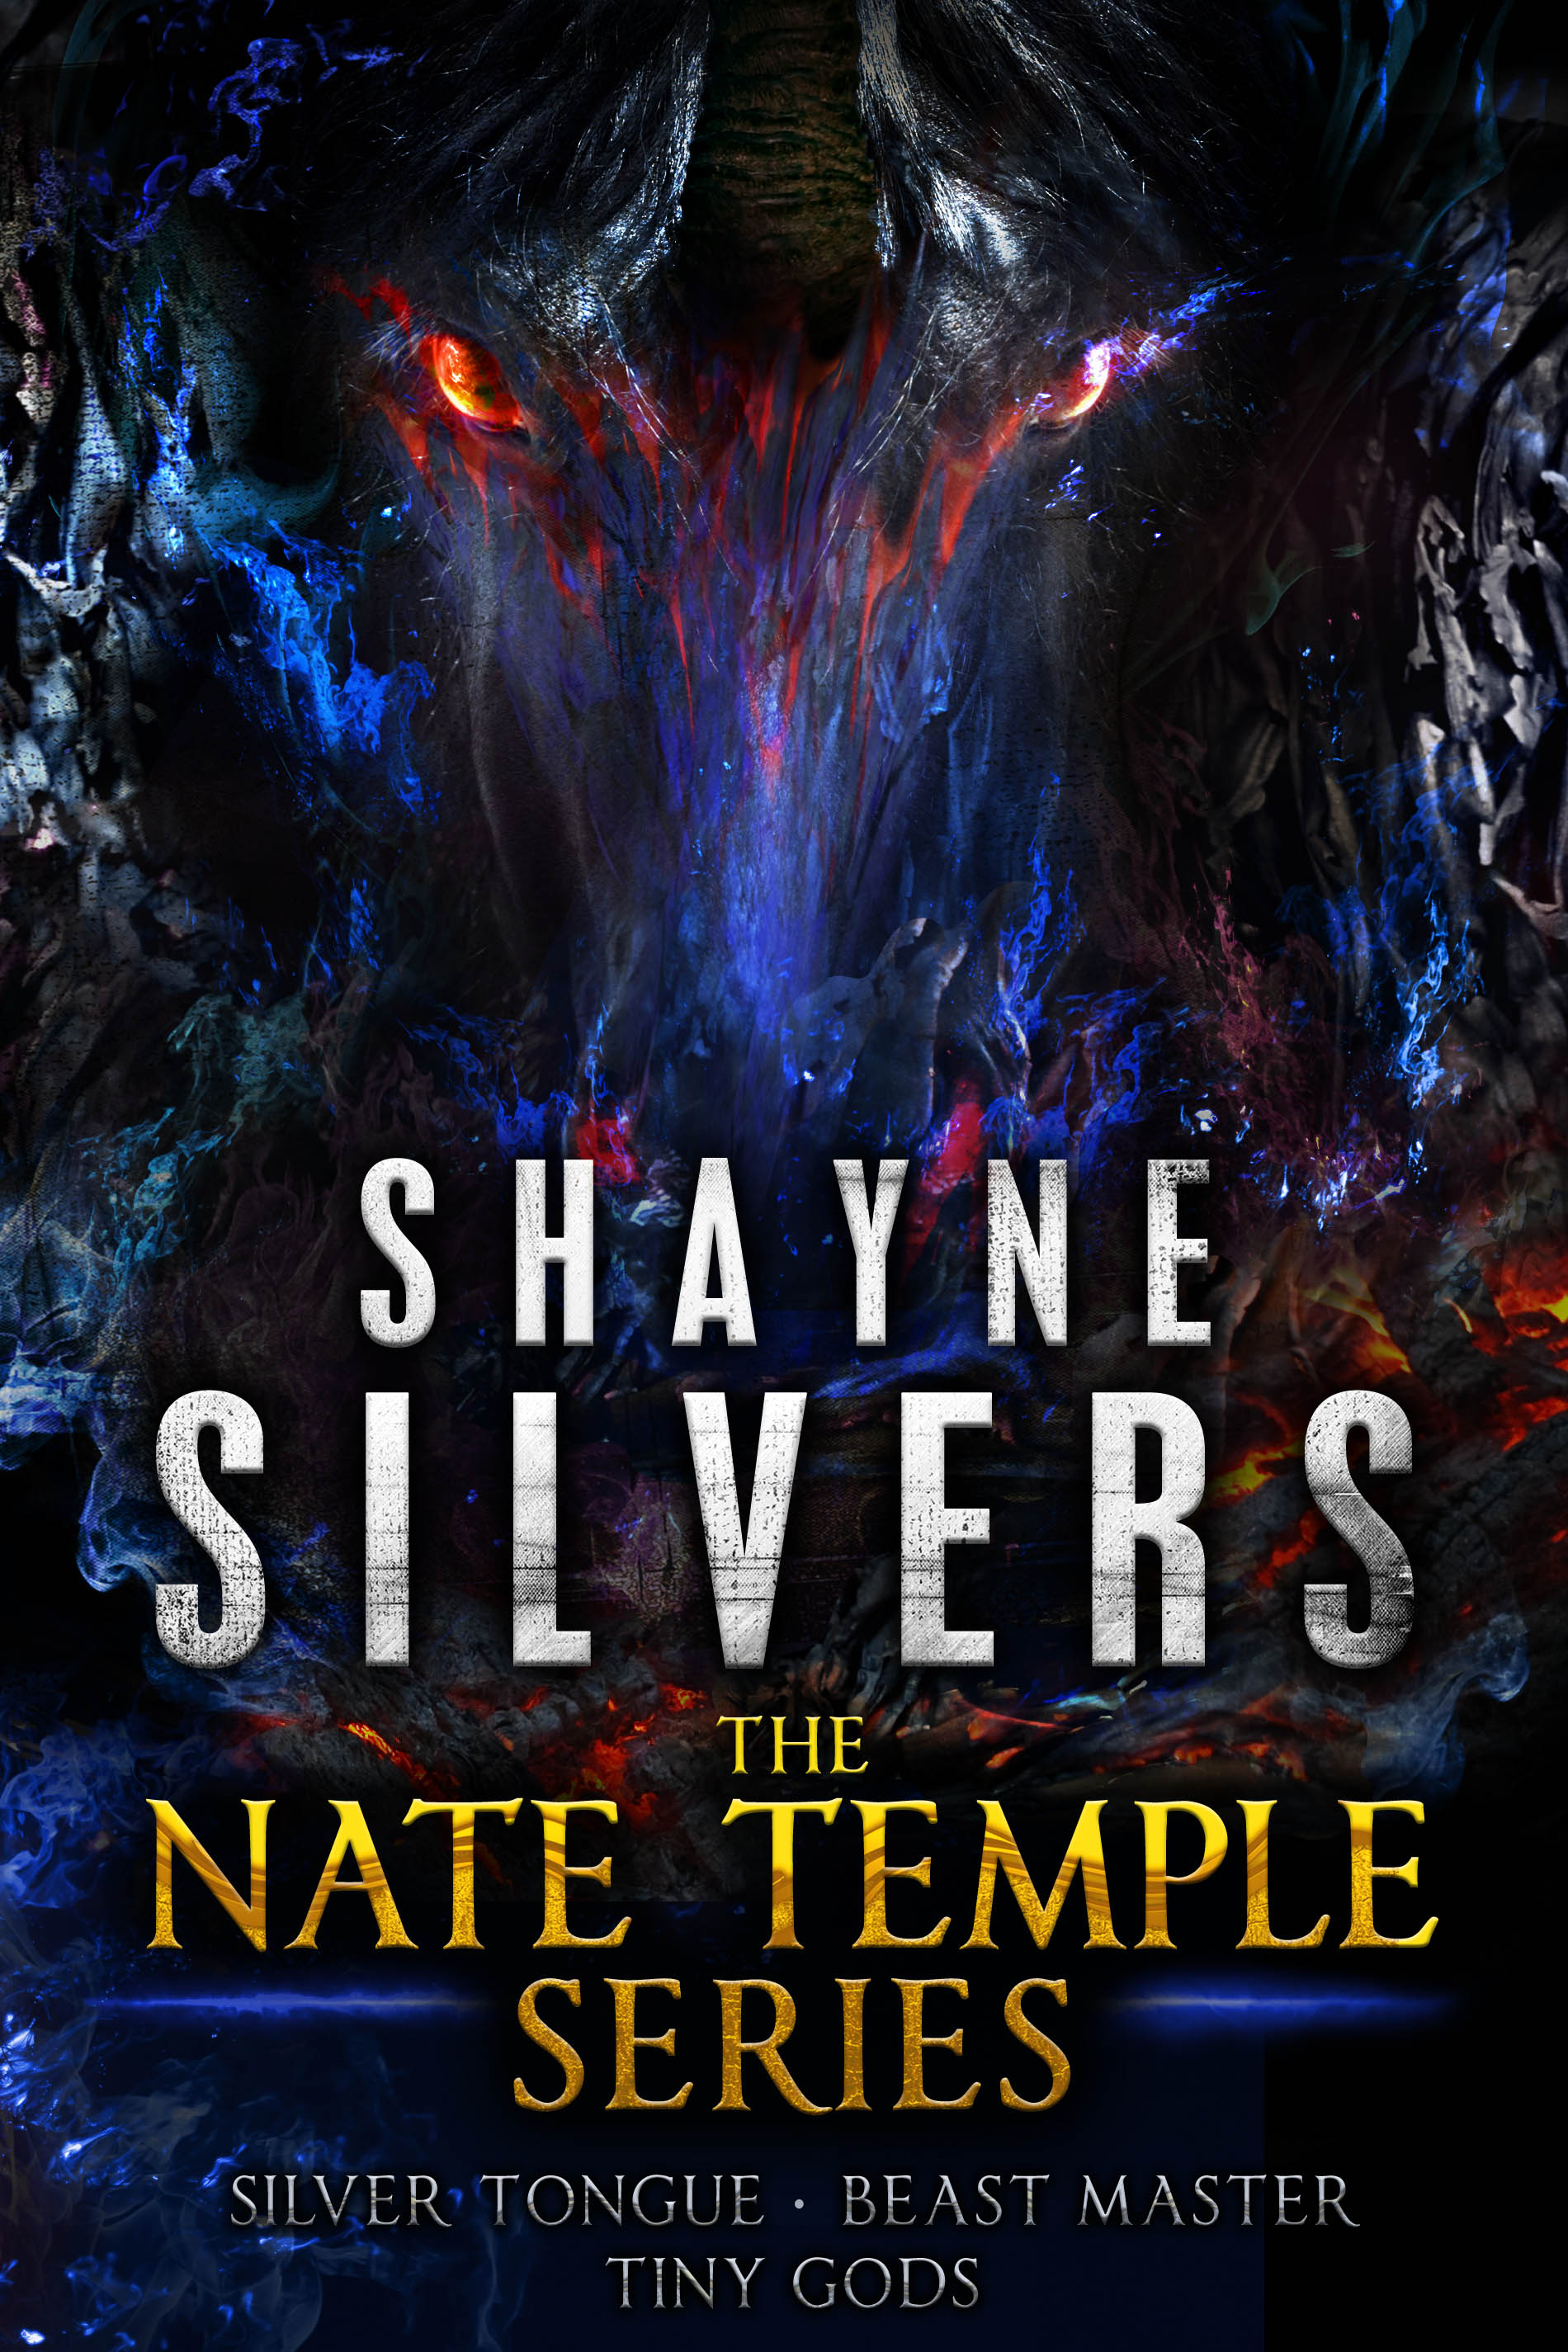 The Nate Temple Series Box Set 2 (The Nate Temple Series, #4-6)